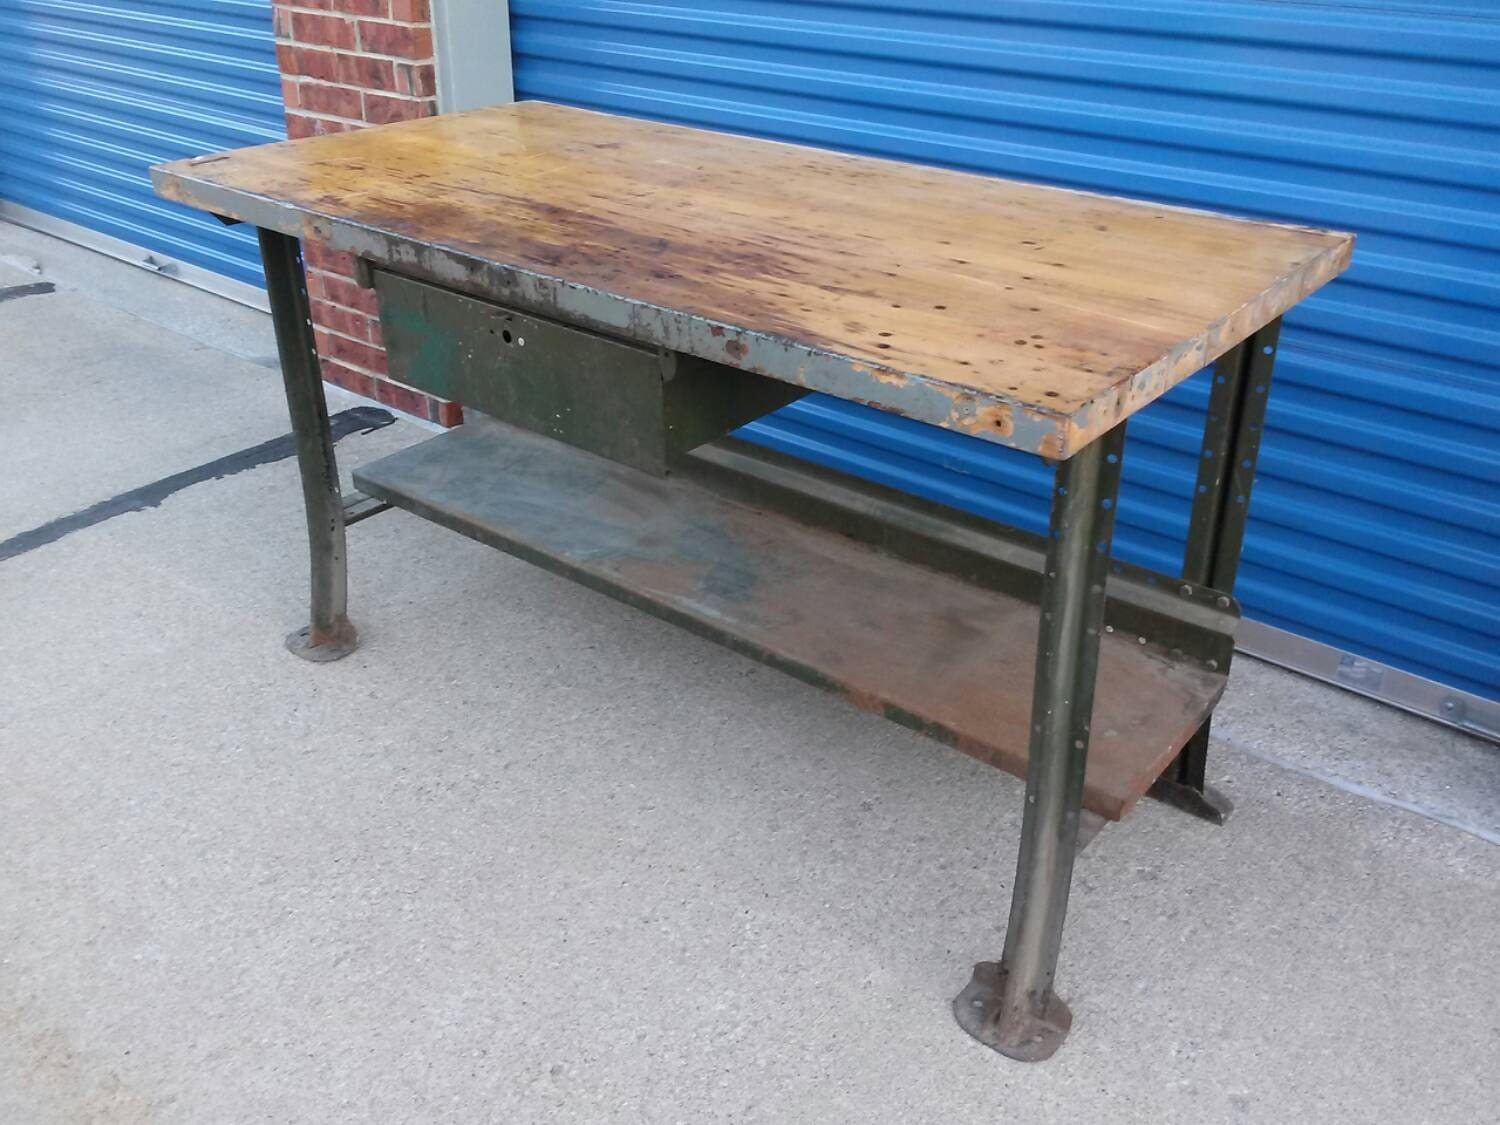 vintage industrial lyon brand work bench table with